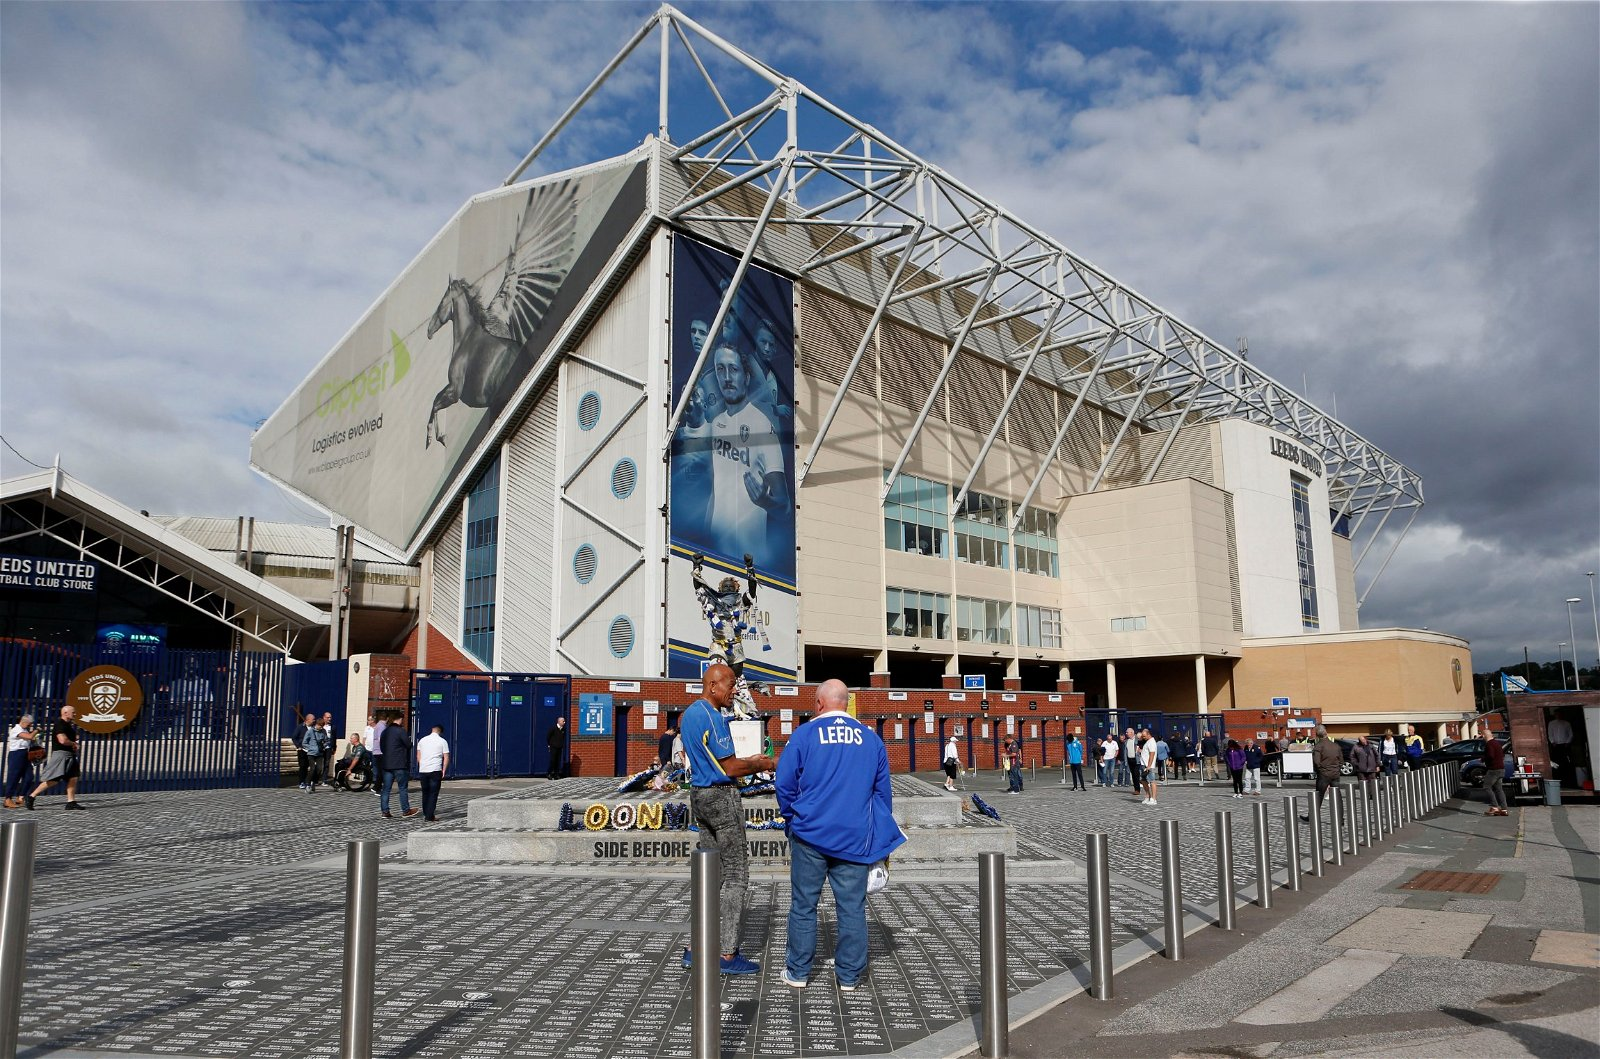 Leeds fans unconvinced by Angus Kinnear's reveal about Elland Road